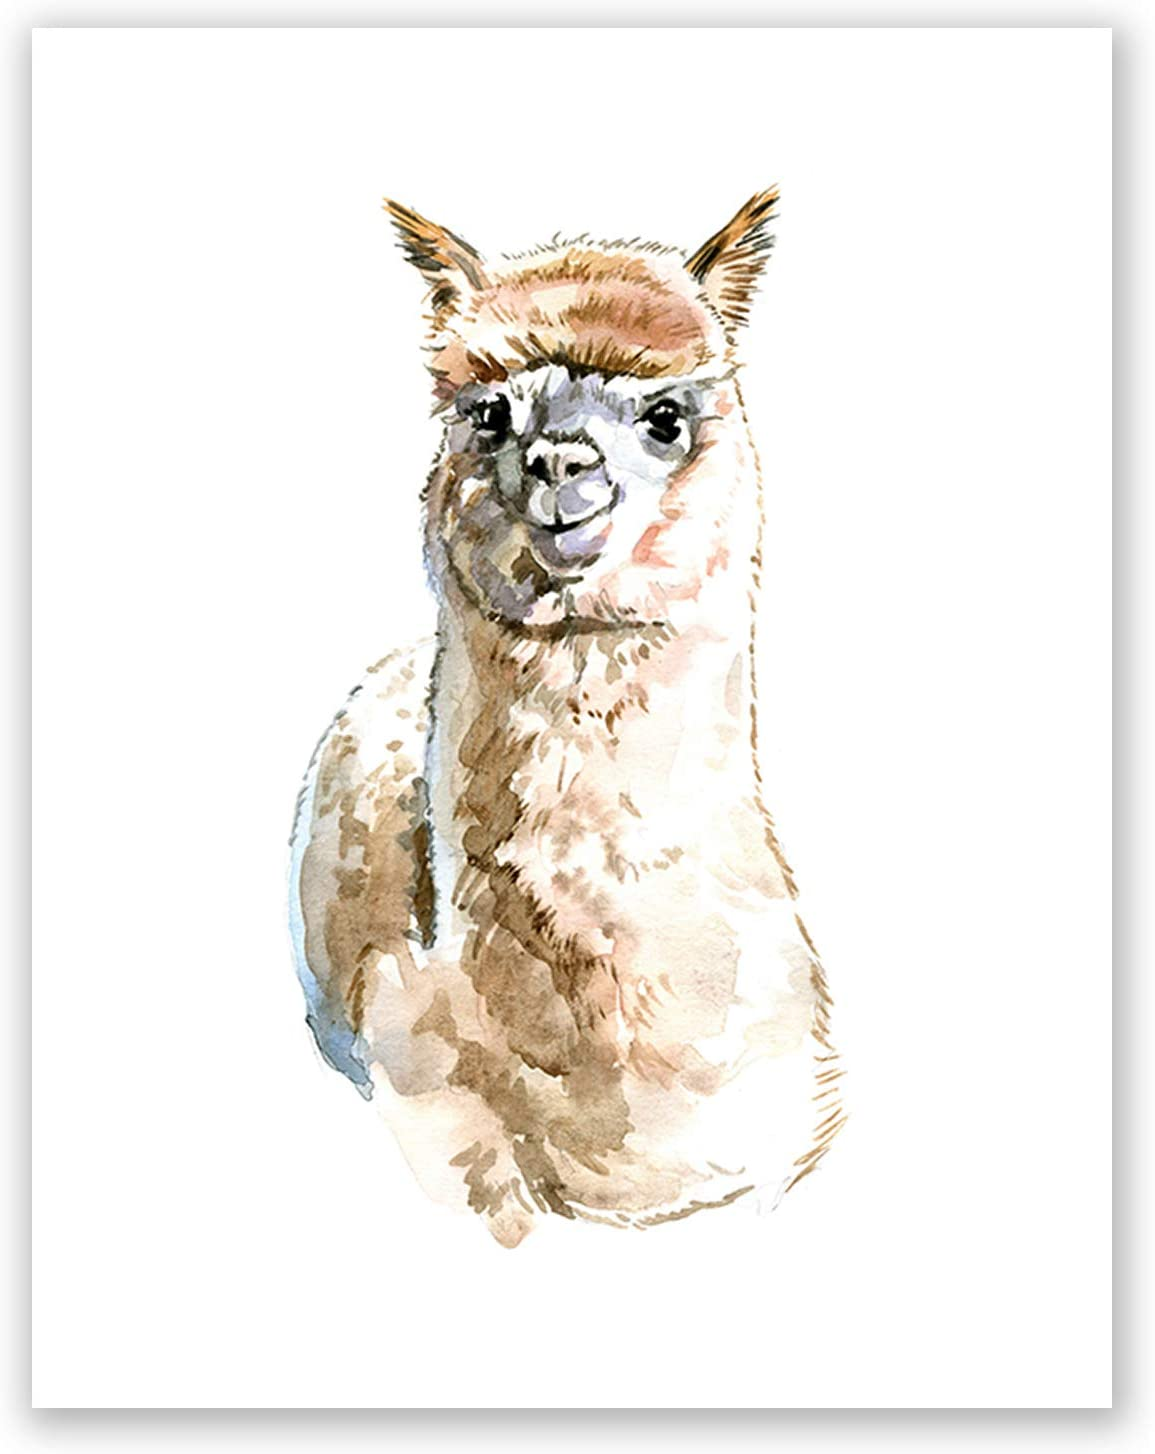 LOVELY ALPACA LLAMA ANIMAL CANVAS PICTURES 6 TO CHOOSE FROM WALL HANGING ART